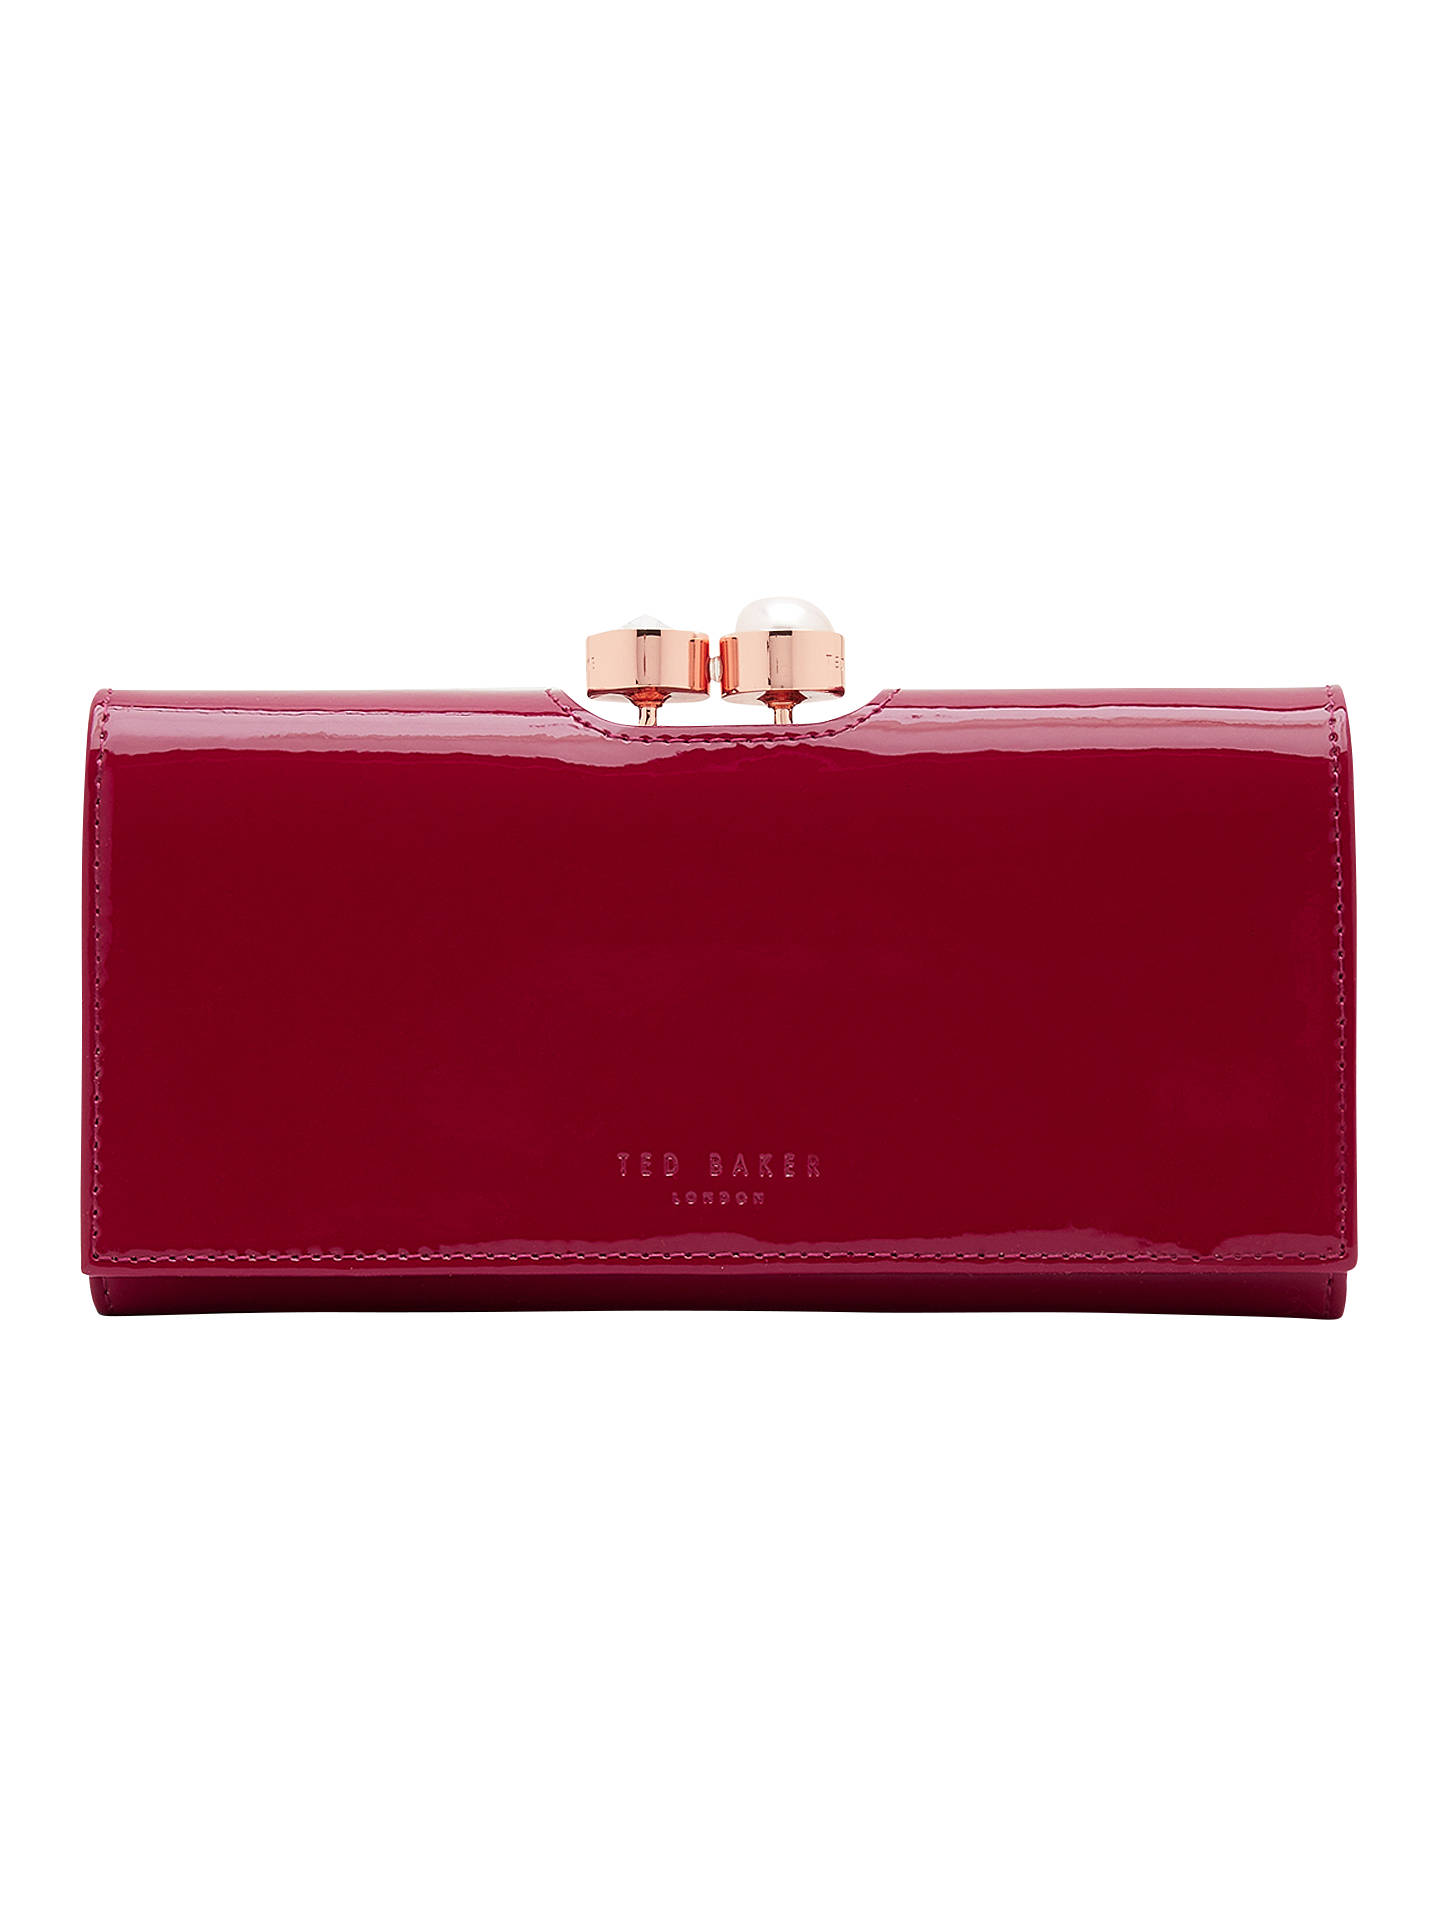 6de5c8198df Buy Ted Baker Cecilie Pearl Leather Matinee Purse, Dark Red Online at  johnlewis.com ...